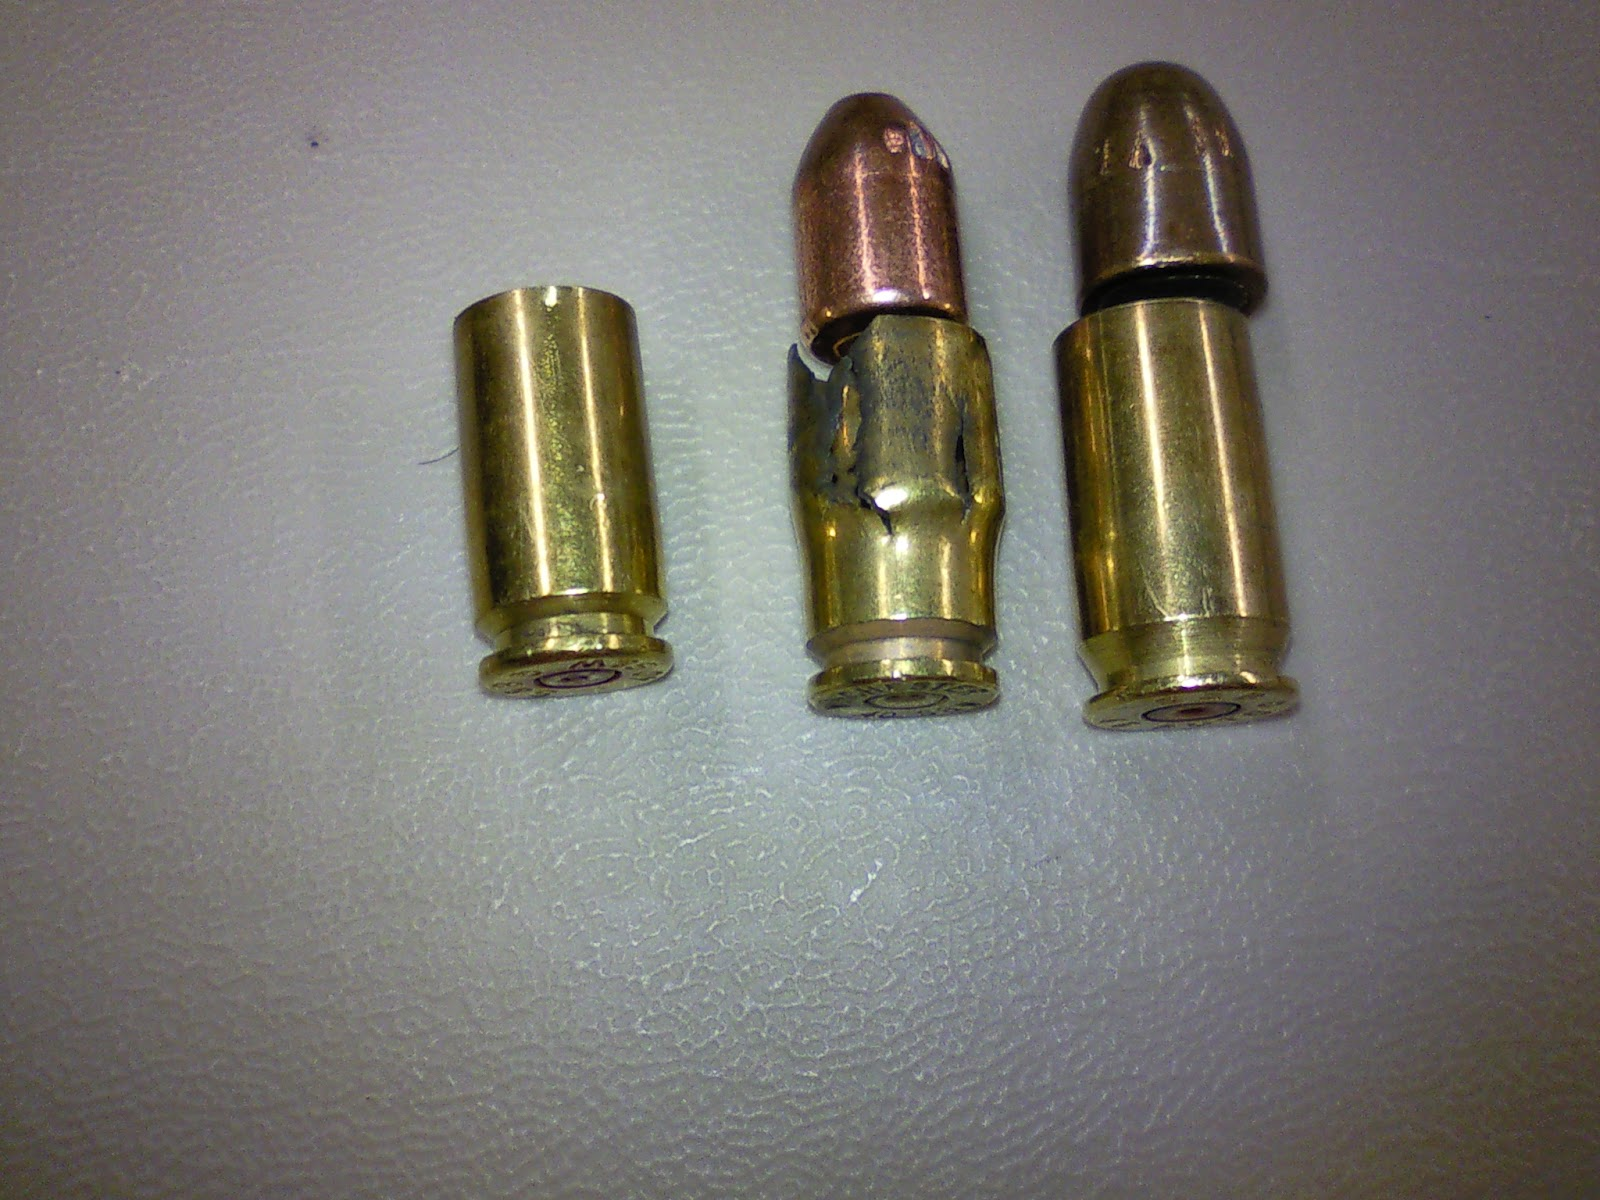 What are the types of bullet shooting